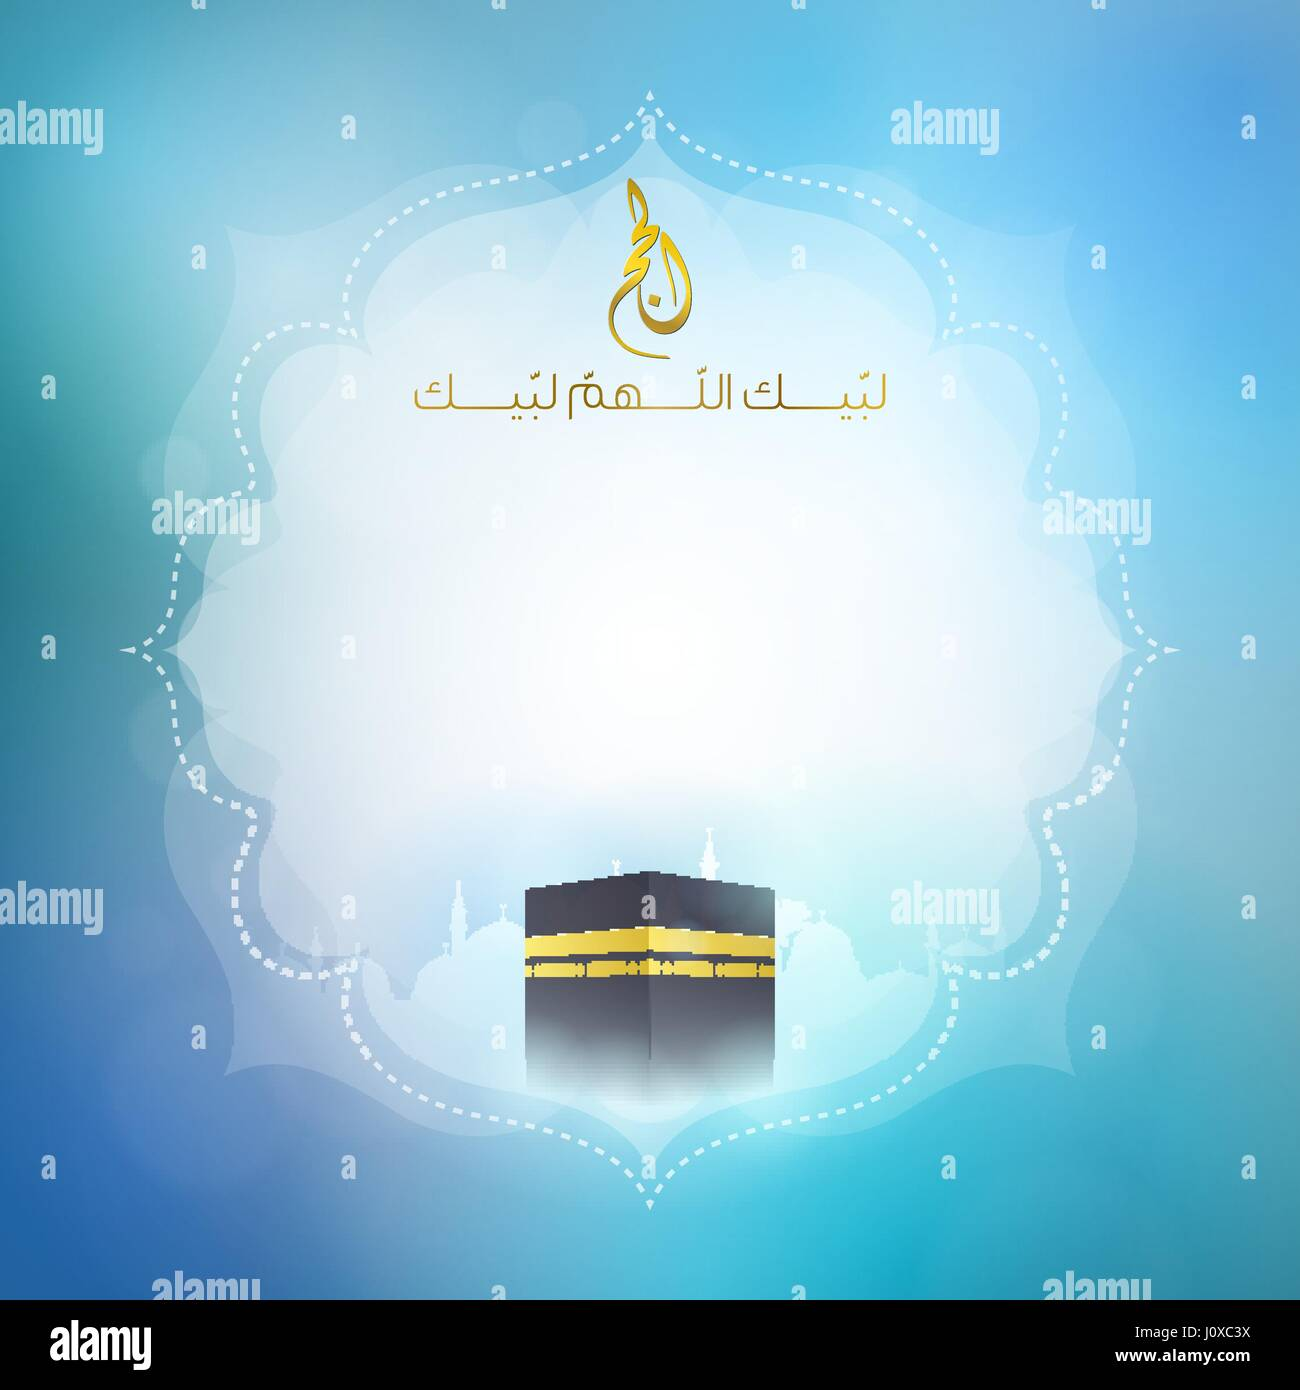 Umrah Banner: Hajj Greeting Background Celebration With Arabic